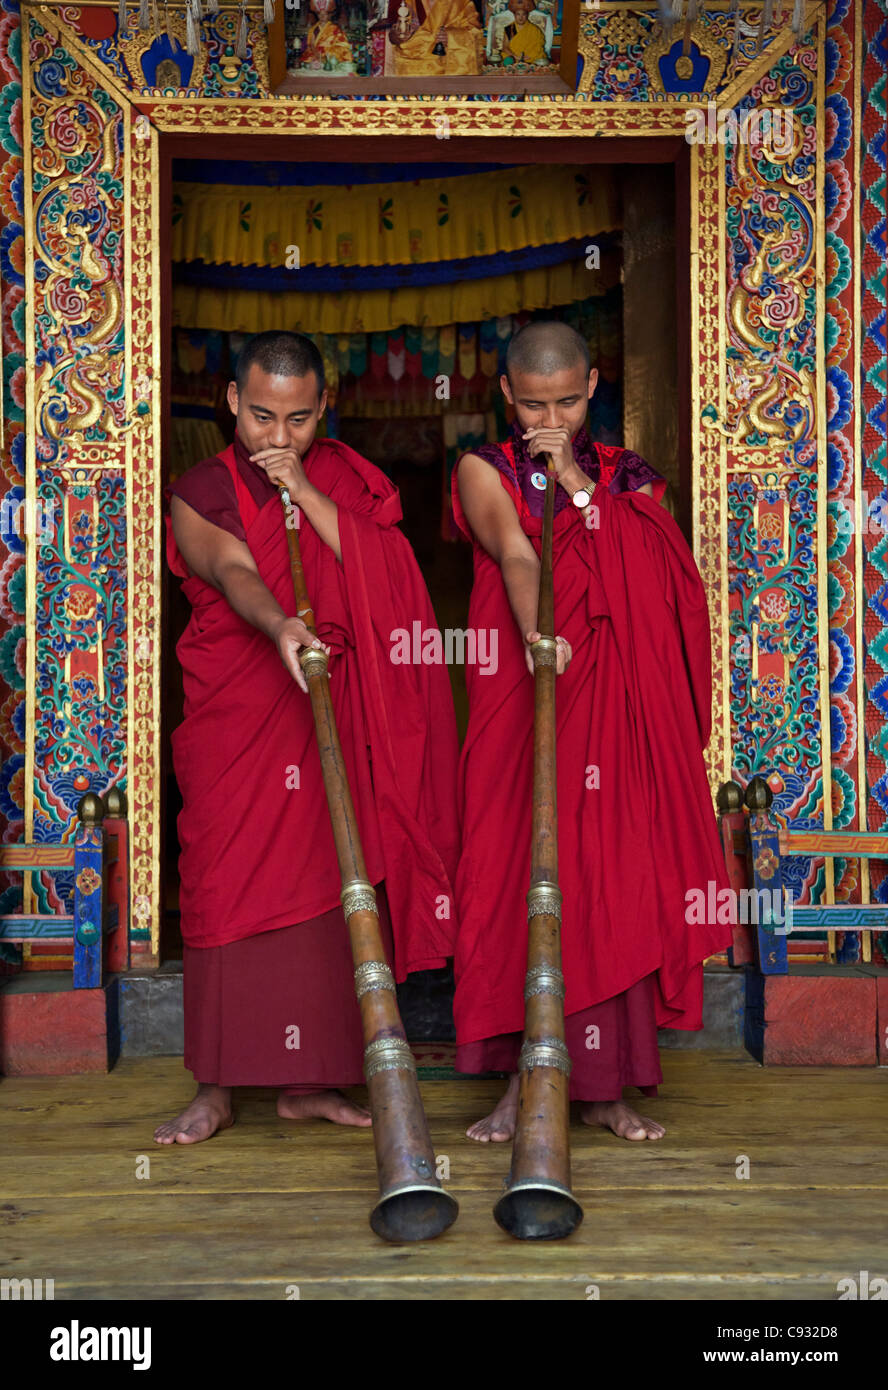 Two monks blow long horns called dung-chen, at the temple of Wangdue Phodrang Dzong (fortress). - Stock Image